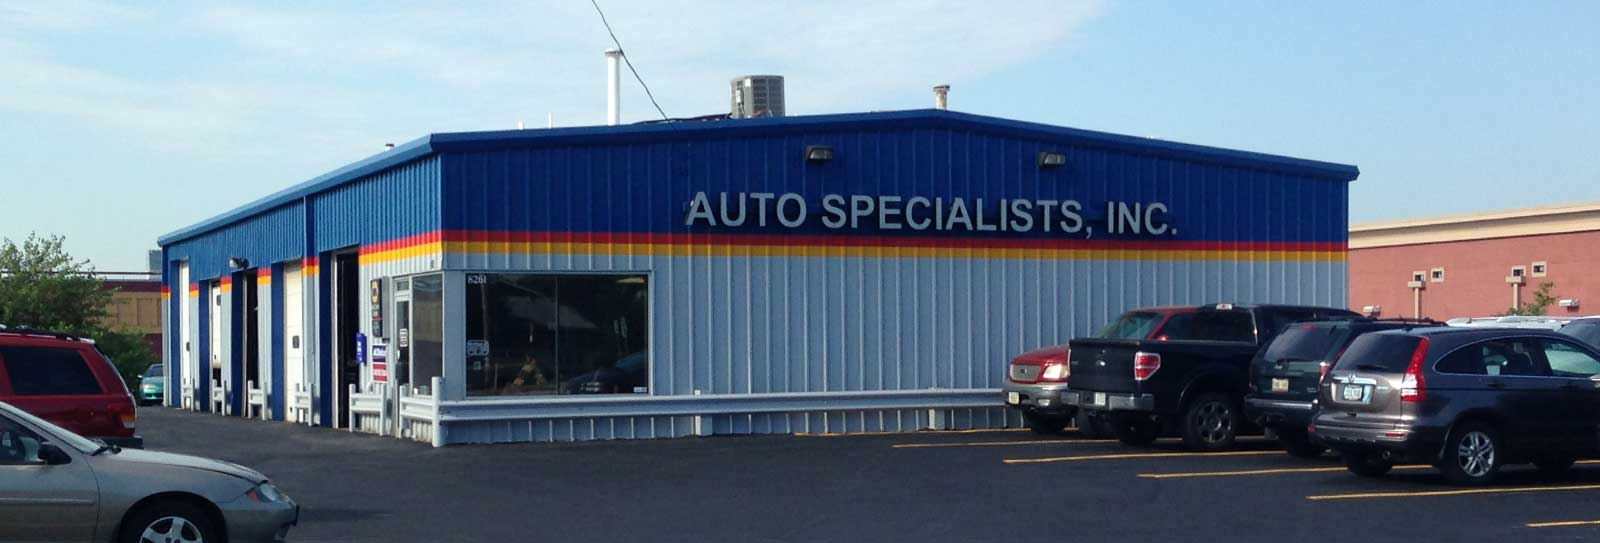 Auto Specialists, Inc. - Auto Repair Shop in Omaha